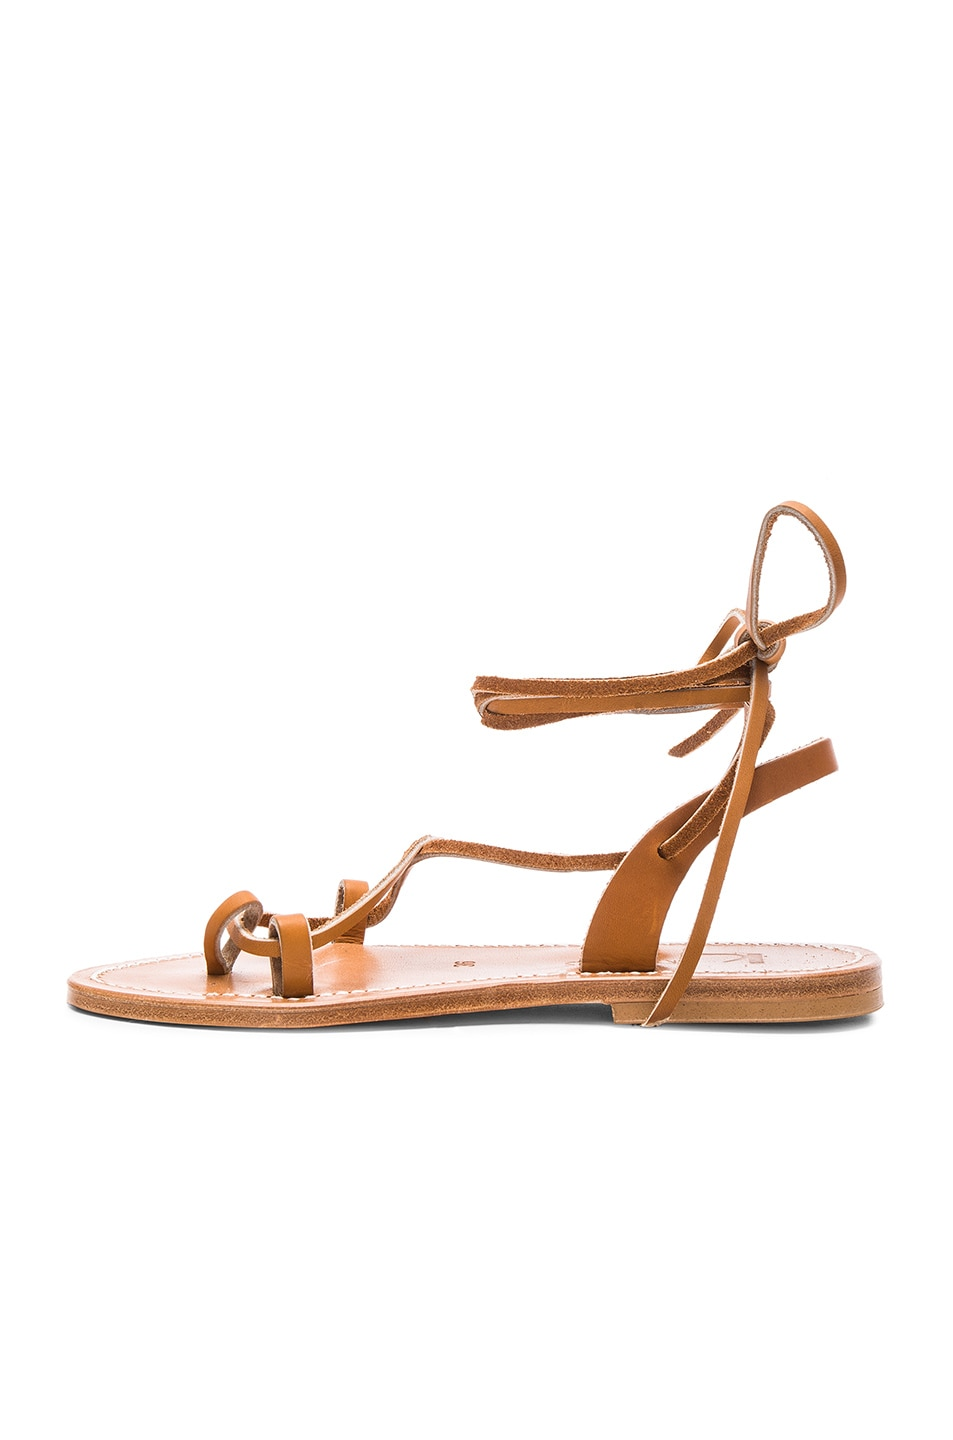 Image 5 of K Jacques Leather Lucile Sandals in Pul Natural